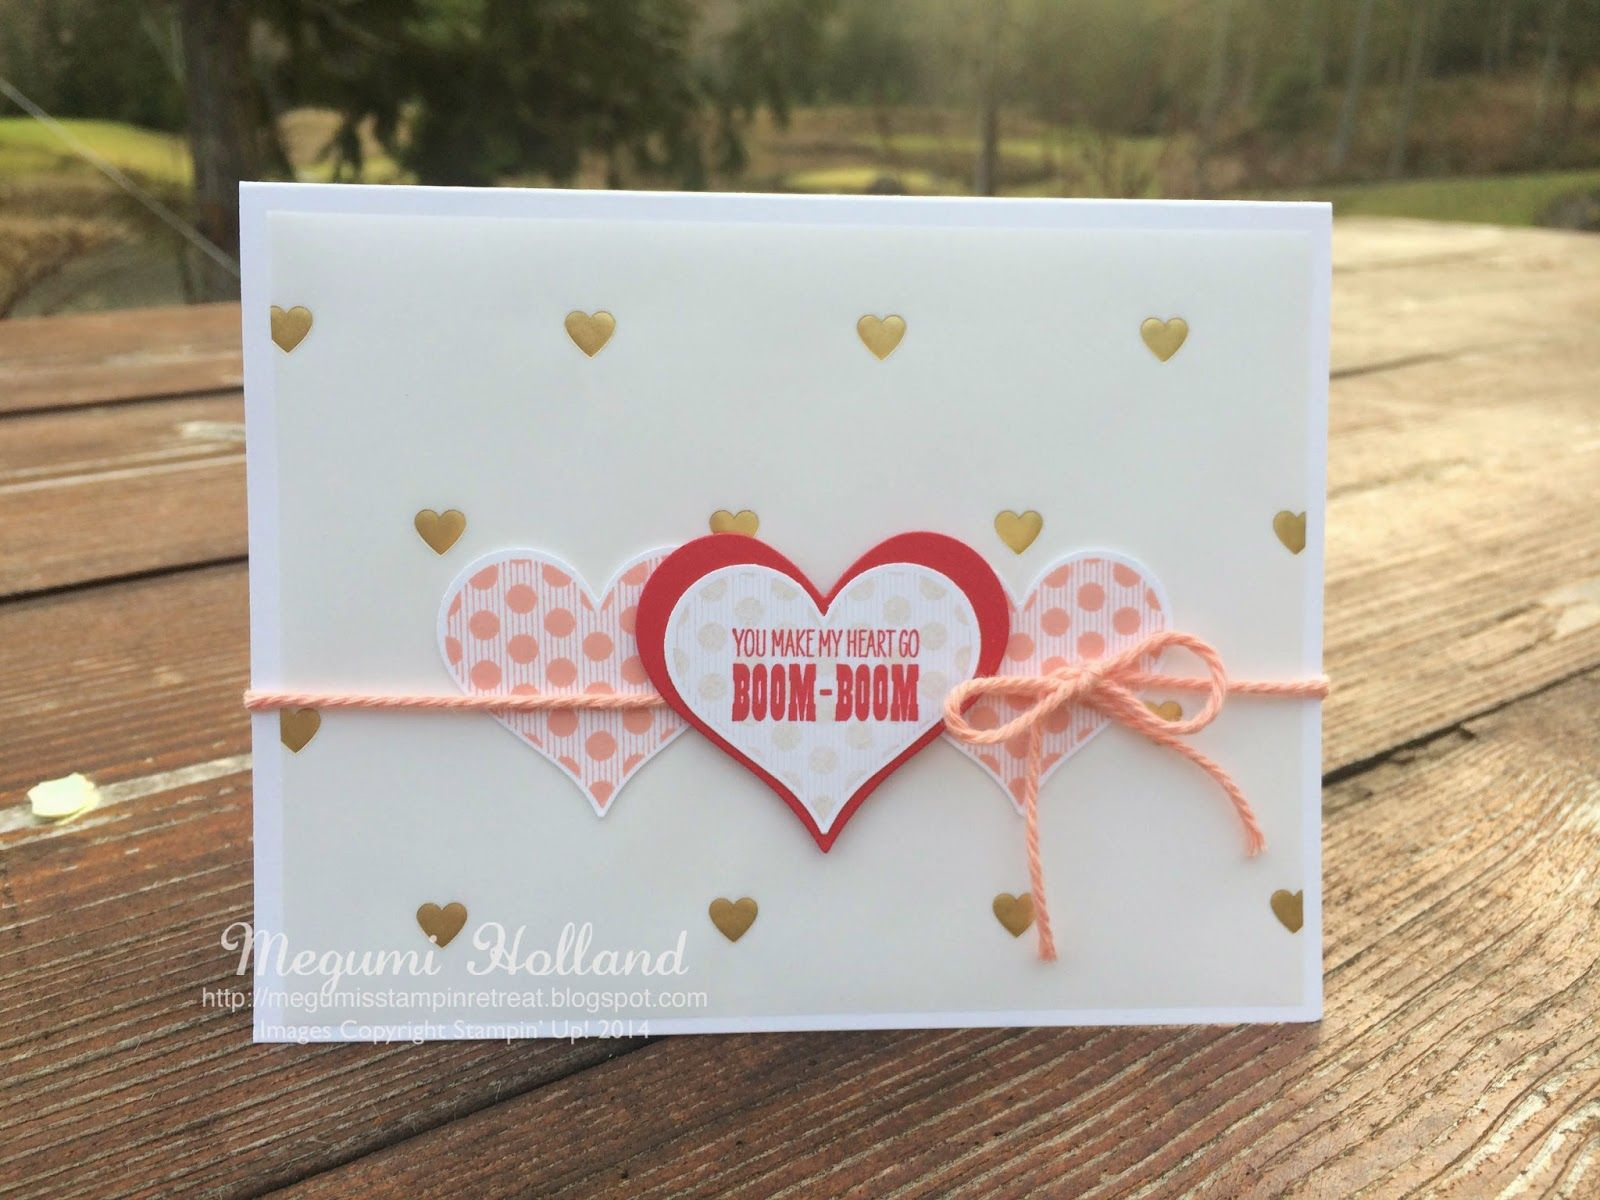 Megumi's Stampin Retreat: Groovy Love Trio Hearts Card & Winner of December Free Stamp Set